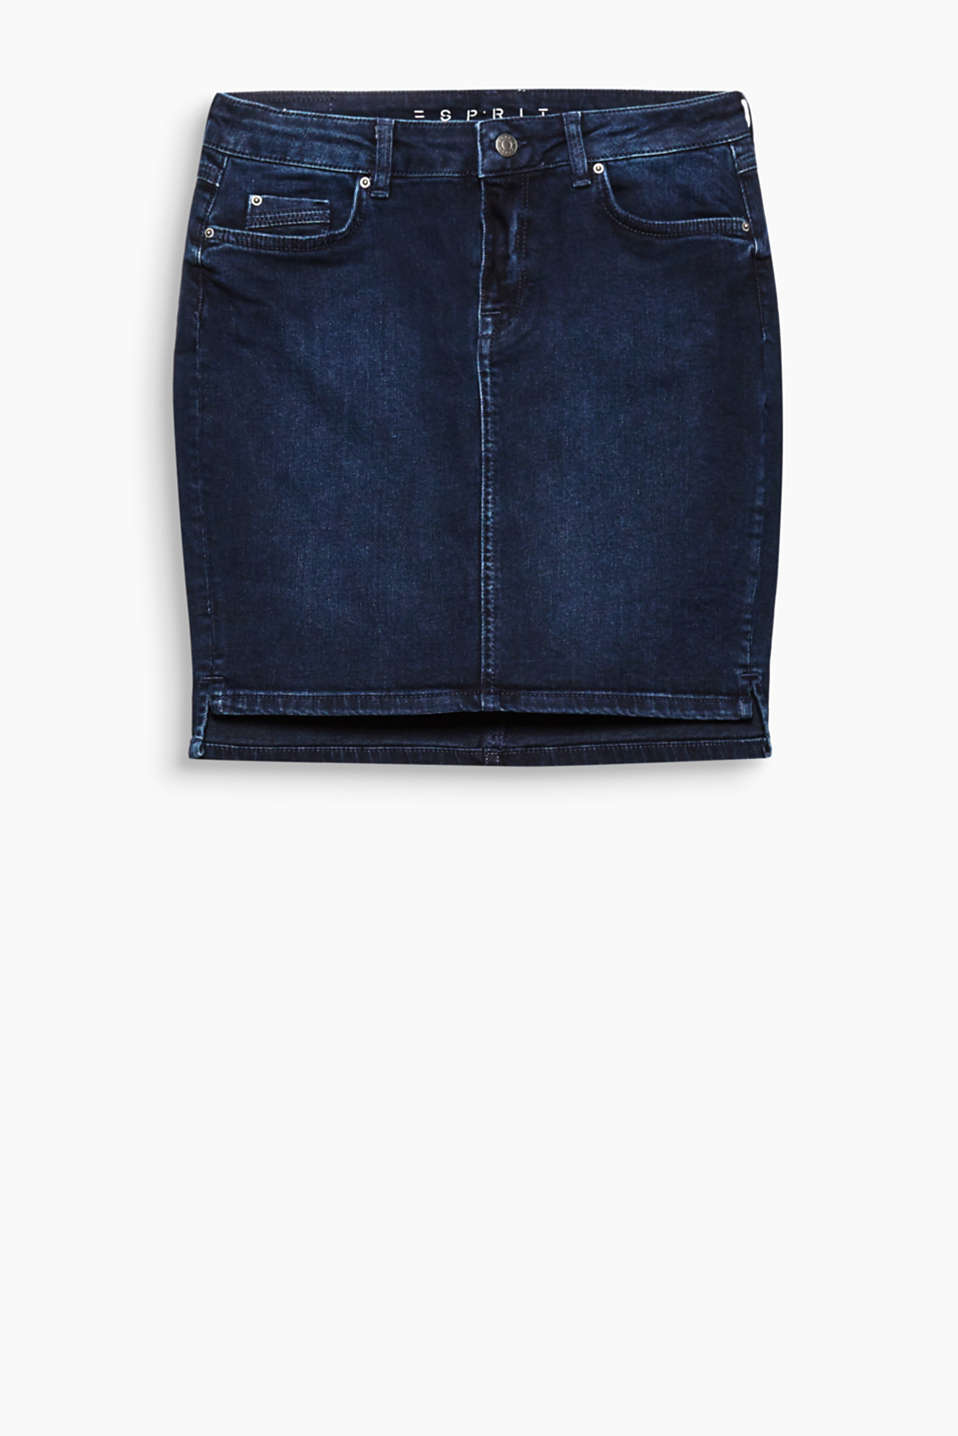 So versatile and feminine: dark blue denim skirt in a classic five-pocket design.